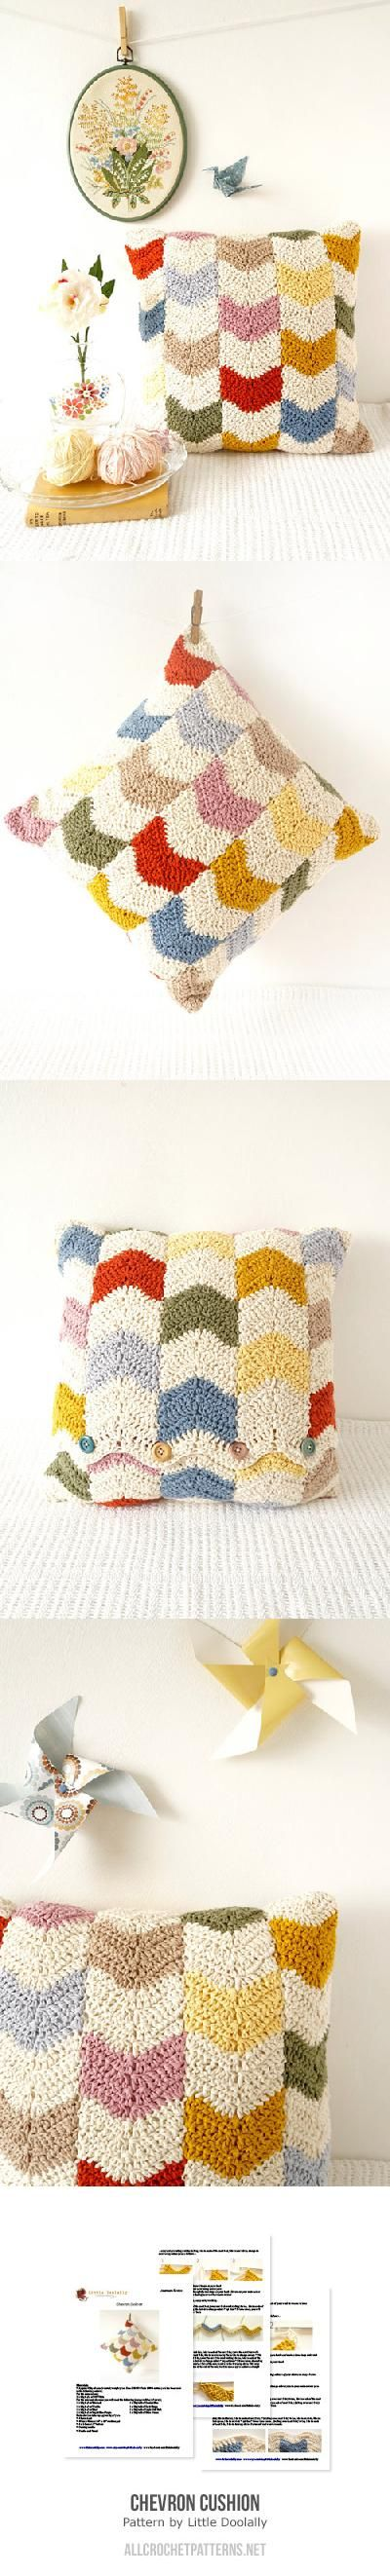 Chevron cushion crochet pattern by Little Doolally | Crafty ...